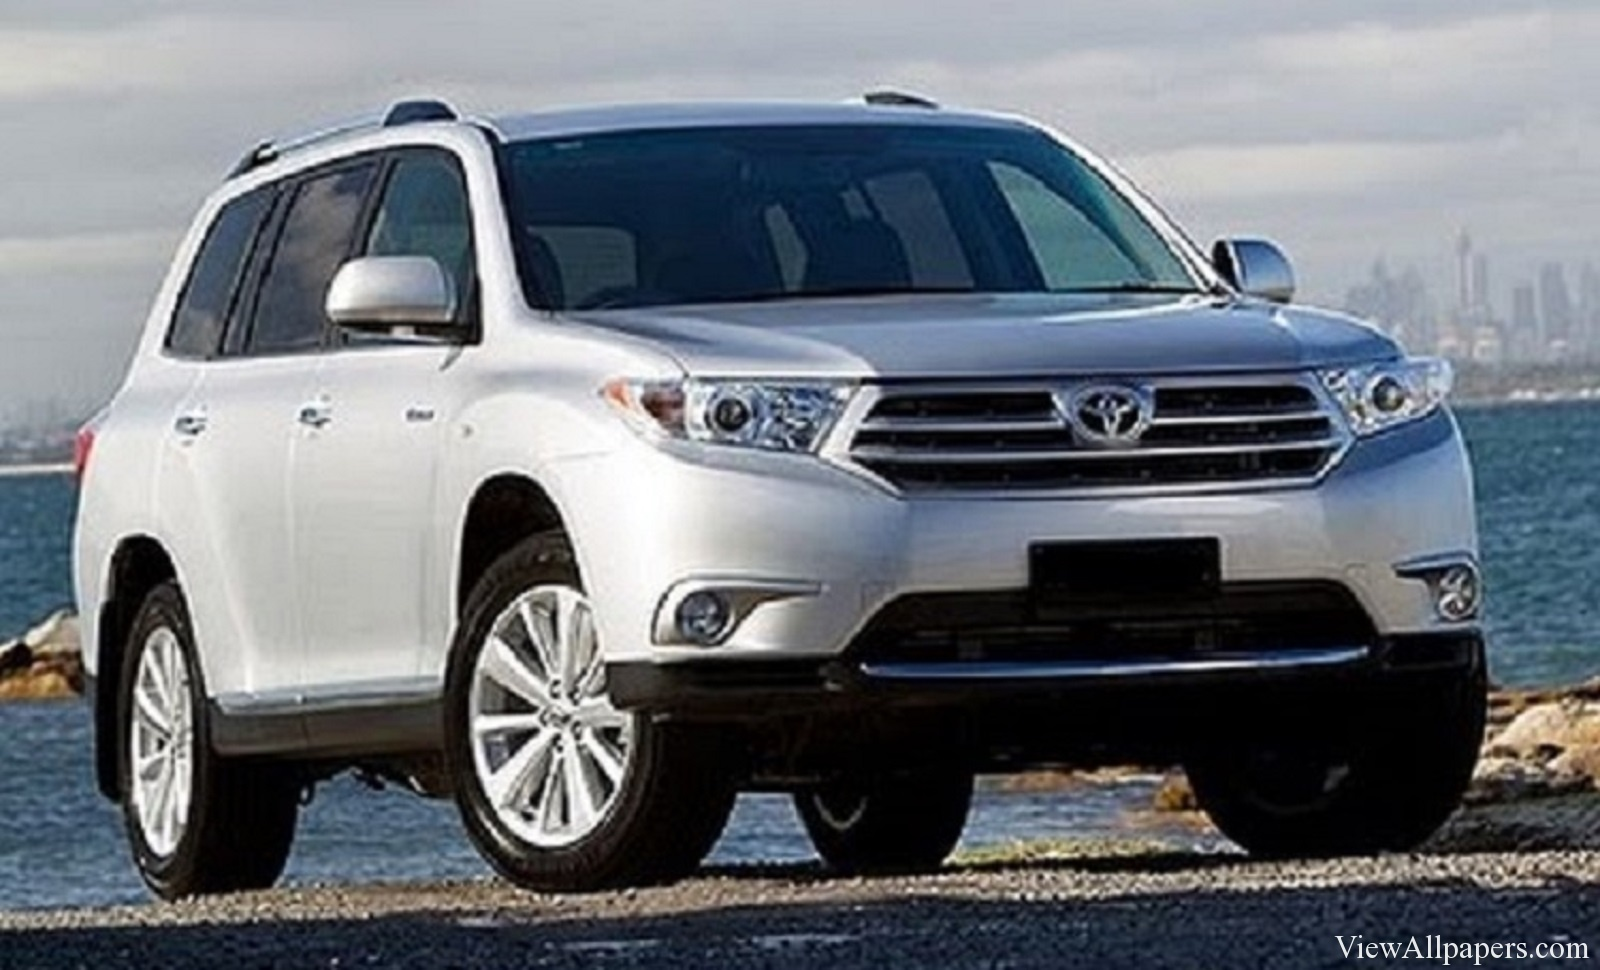 Toyota Fortuner Wallpapers